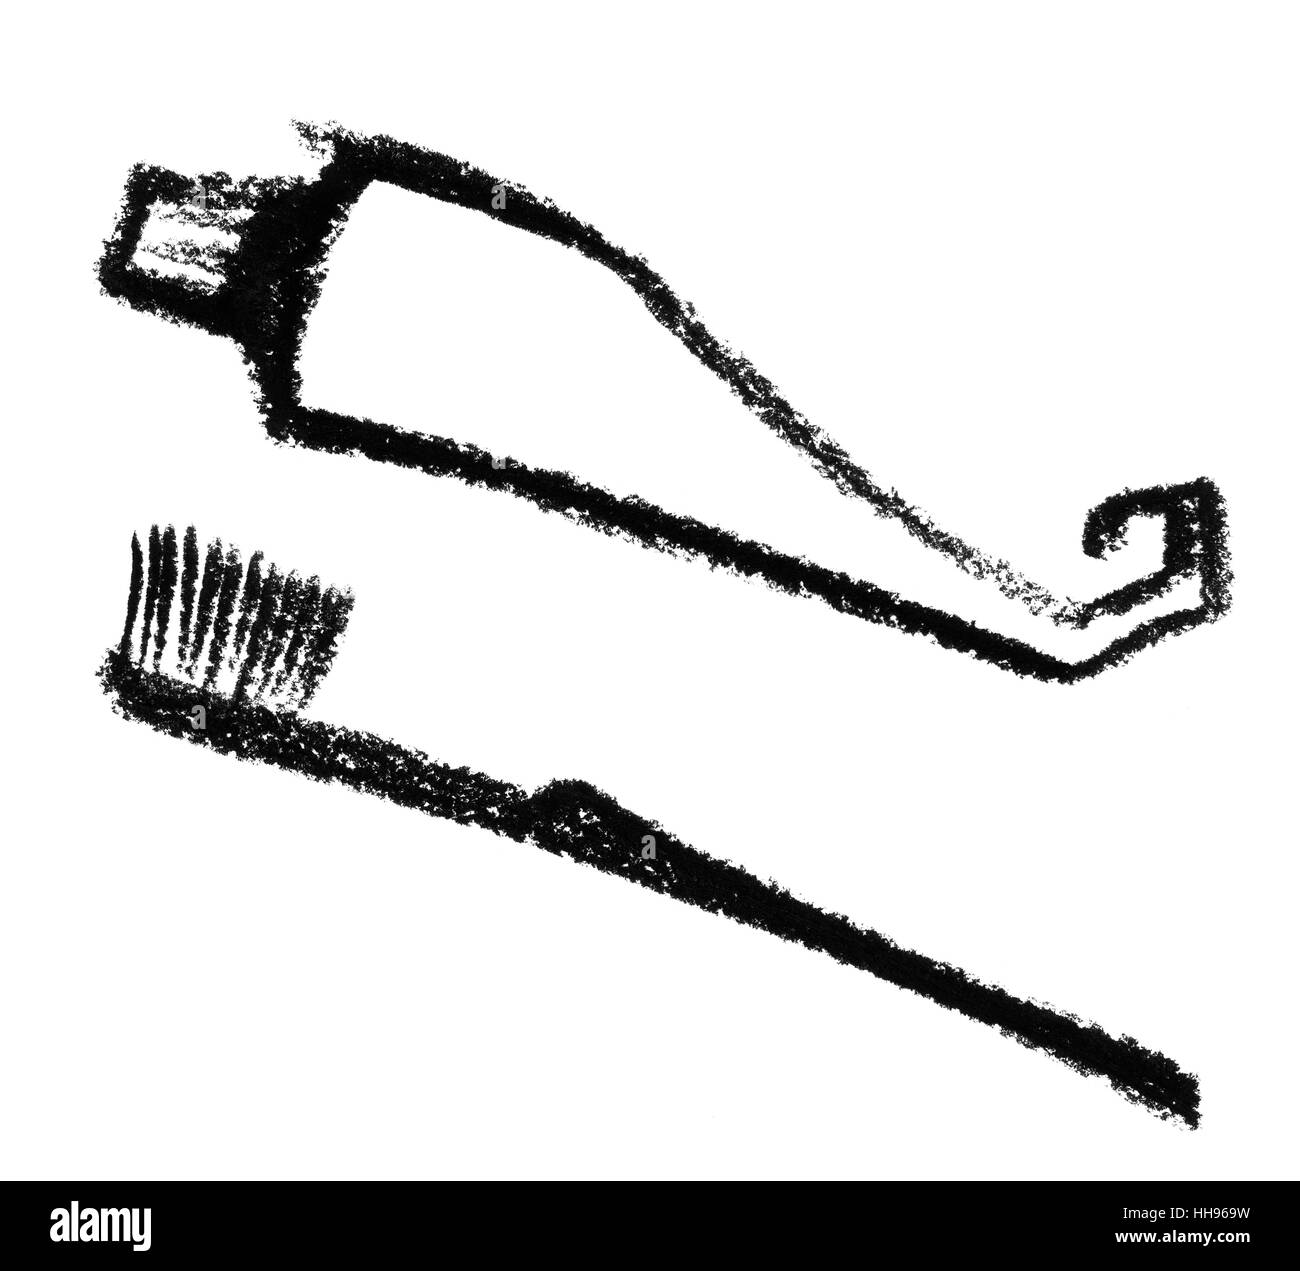 toothpaste, drawing, photo, picture, image, copy, deduction, toothbrush, care Stock Photo